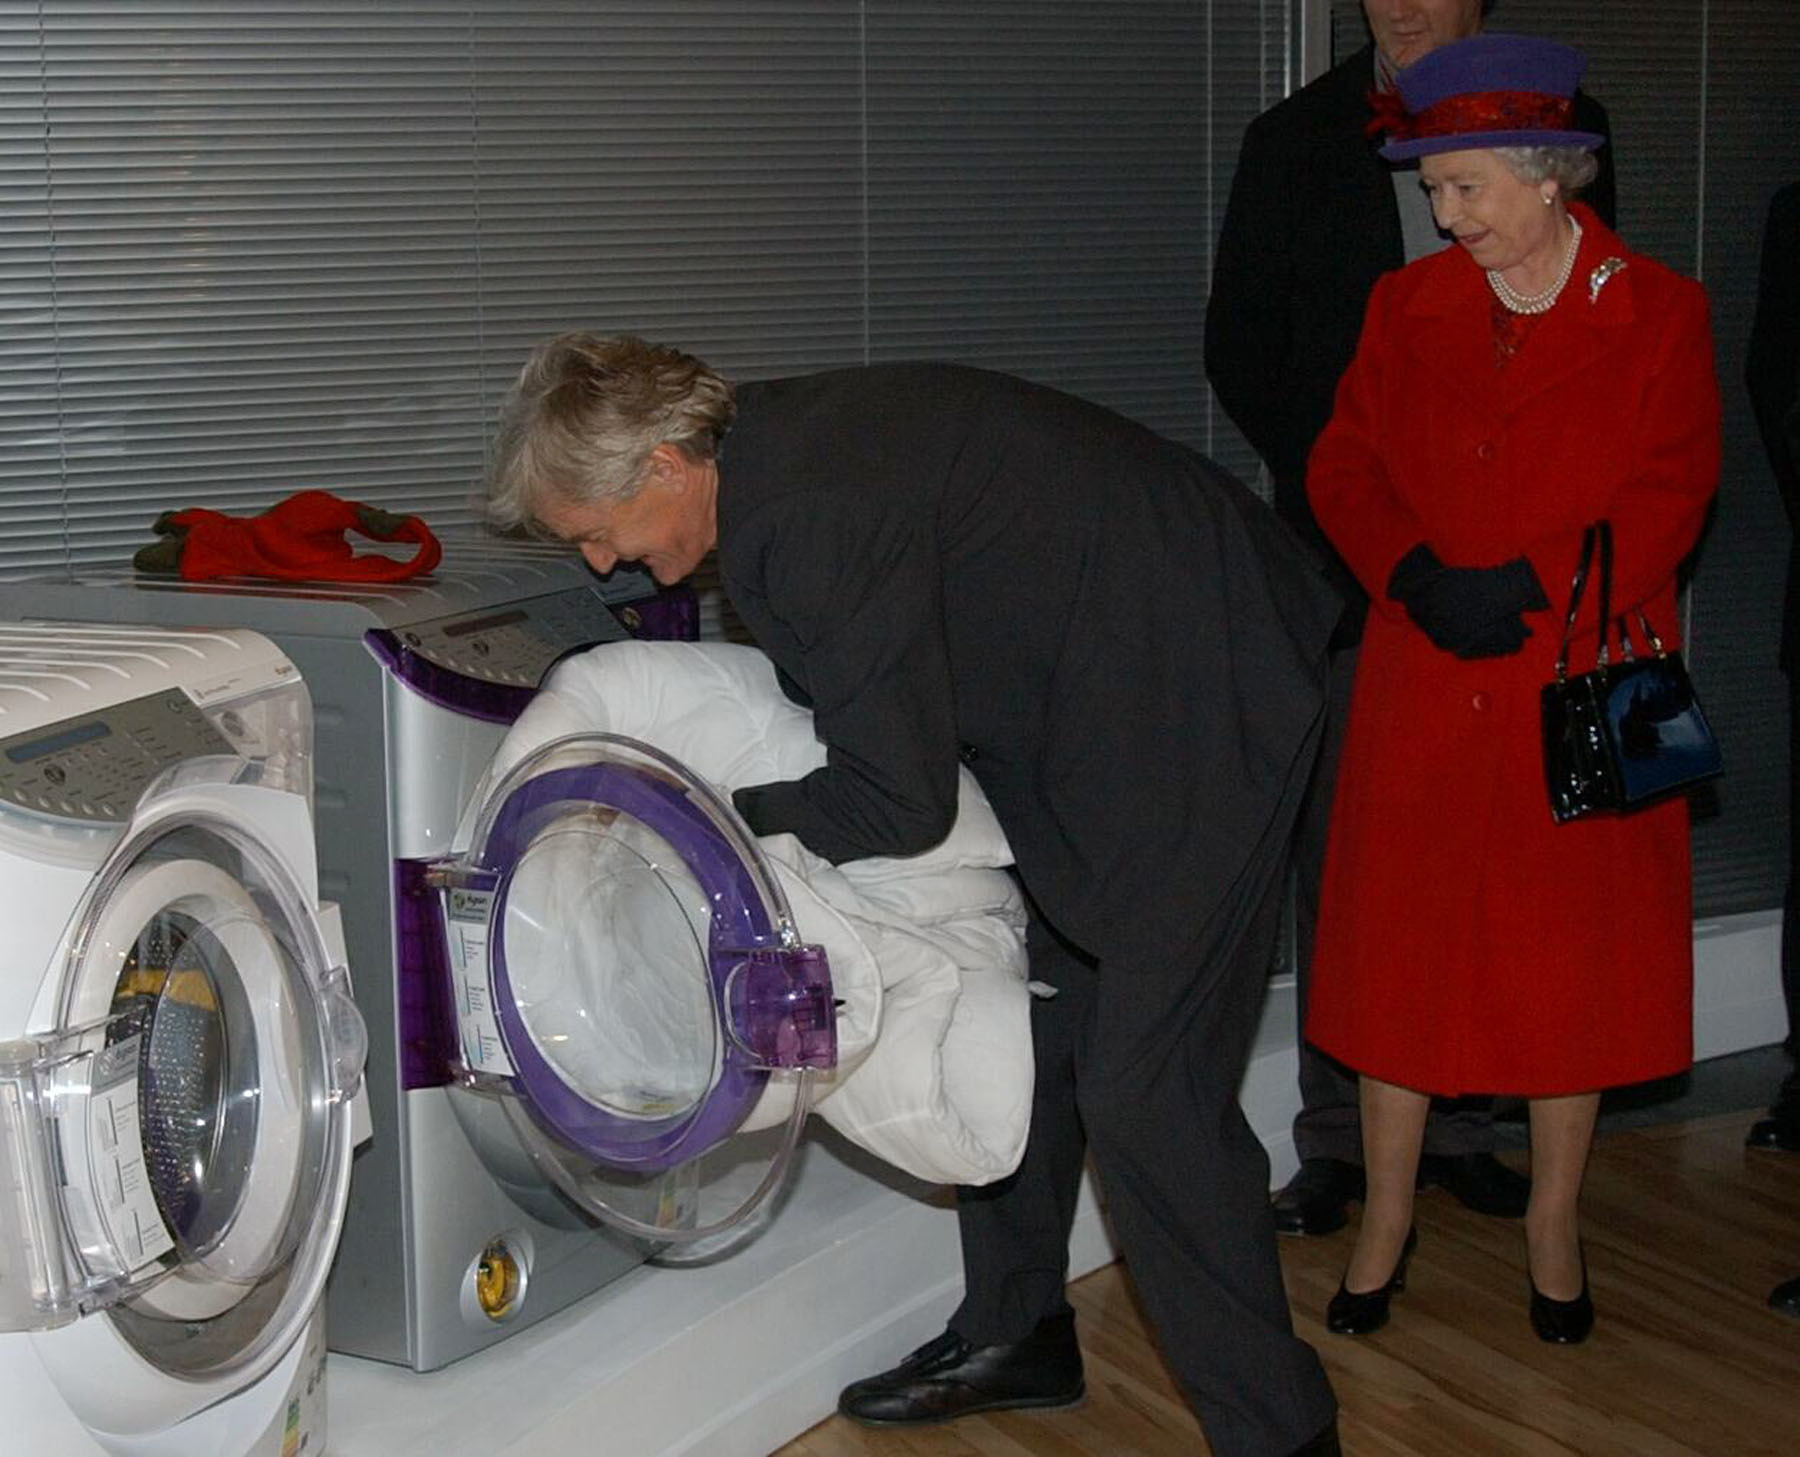 The Queen and the Duke of Edinburgh watch James Dyson demonstrate his washing machine at the domestic appliance maker's Malmesbury factory near Chippenham in Wiltshire.   * She travelled by scheduled train with the Duke of Edinburgh for a day of engagements around the area.